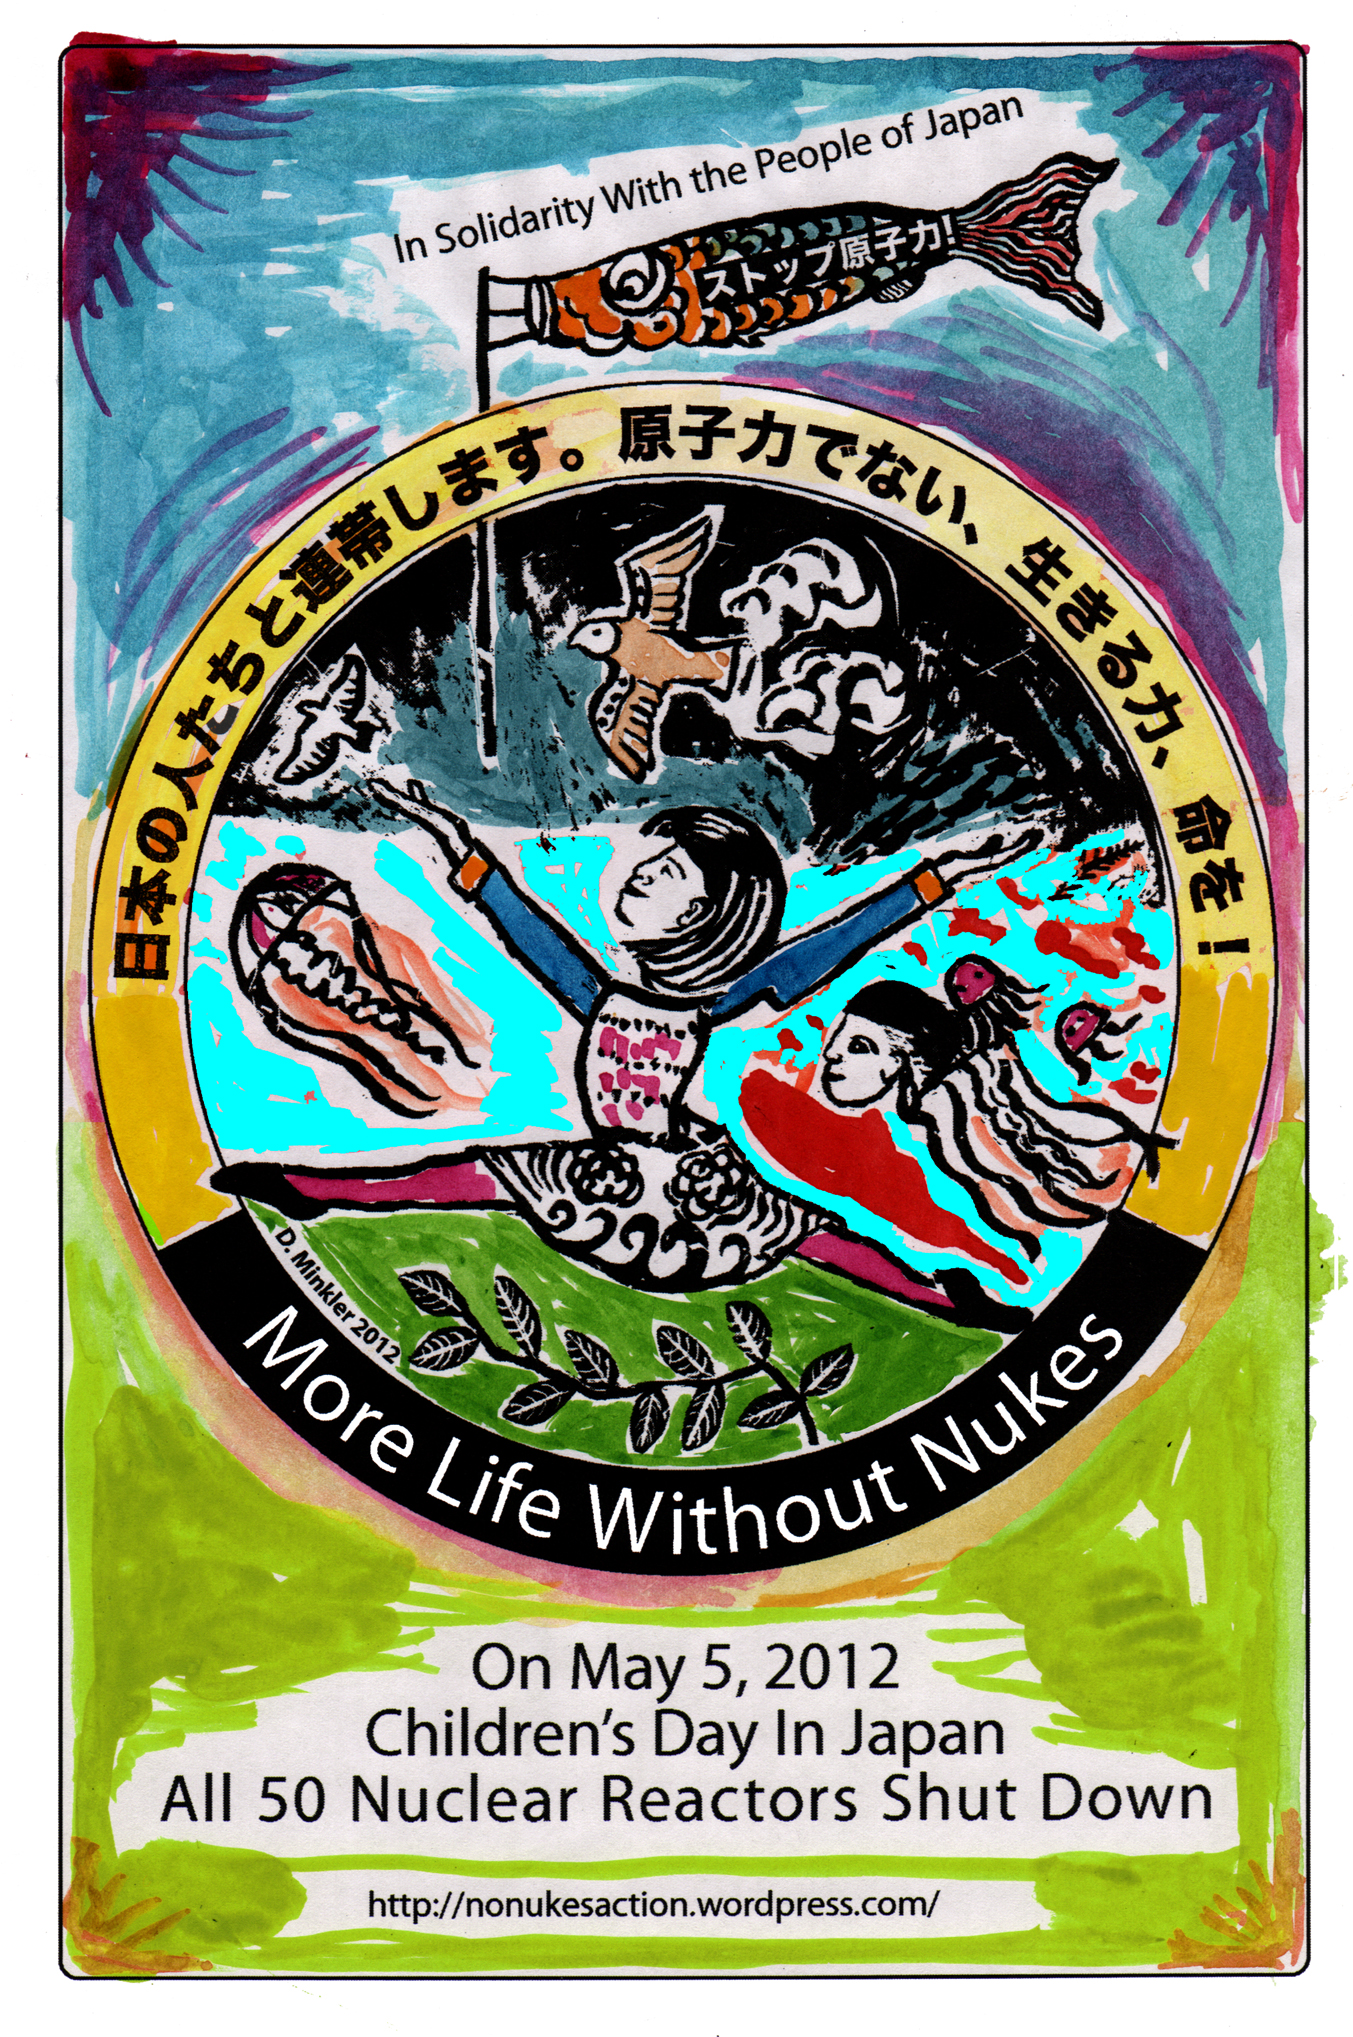 More Life Without Nukes